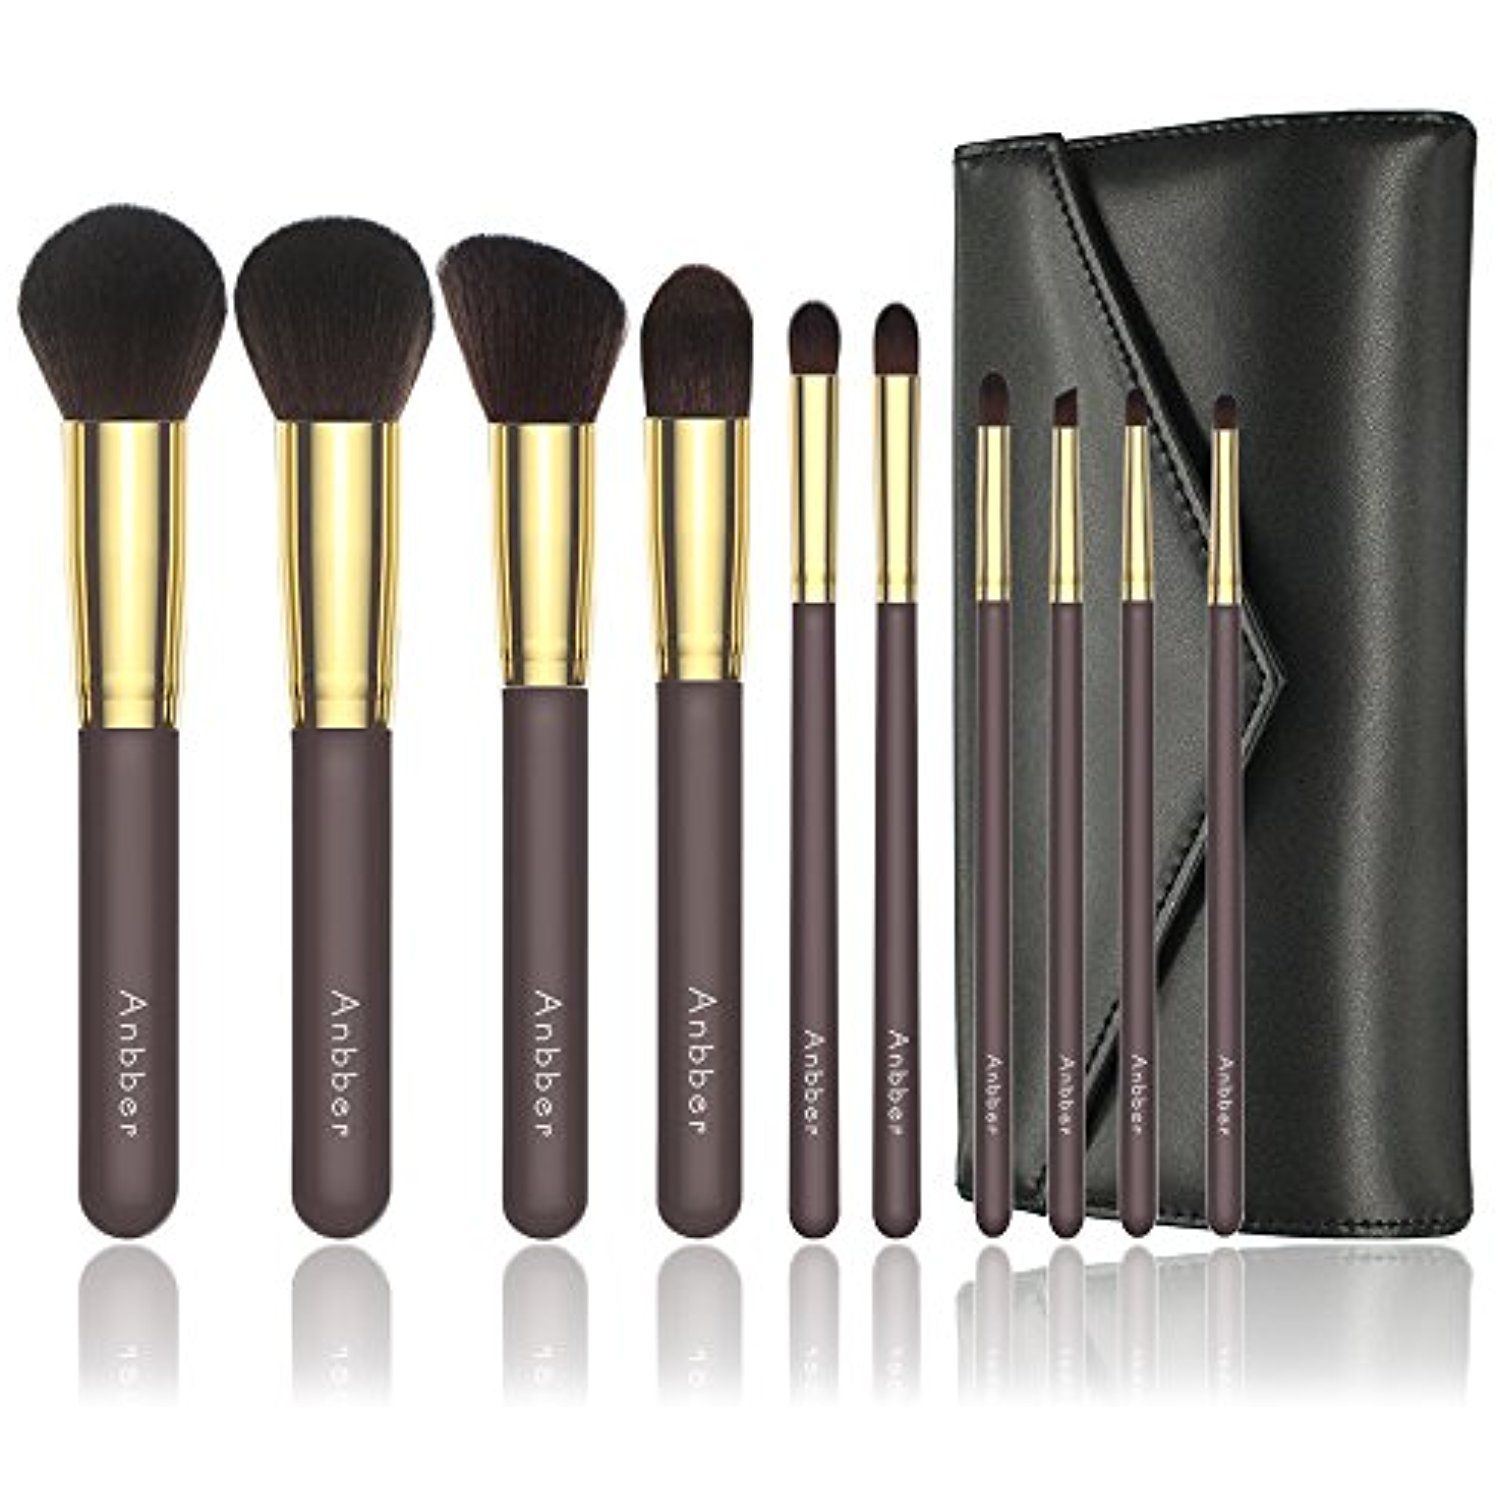 Makeup Brushes Anbber 10Pcs Makeup Brush Set With Makeup Bag